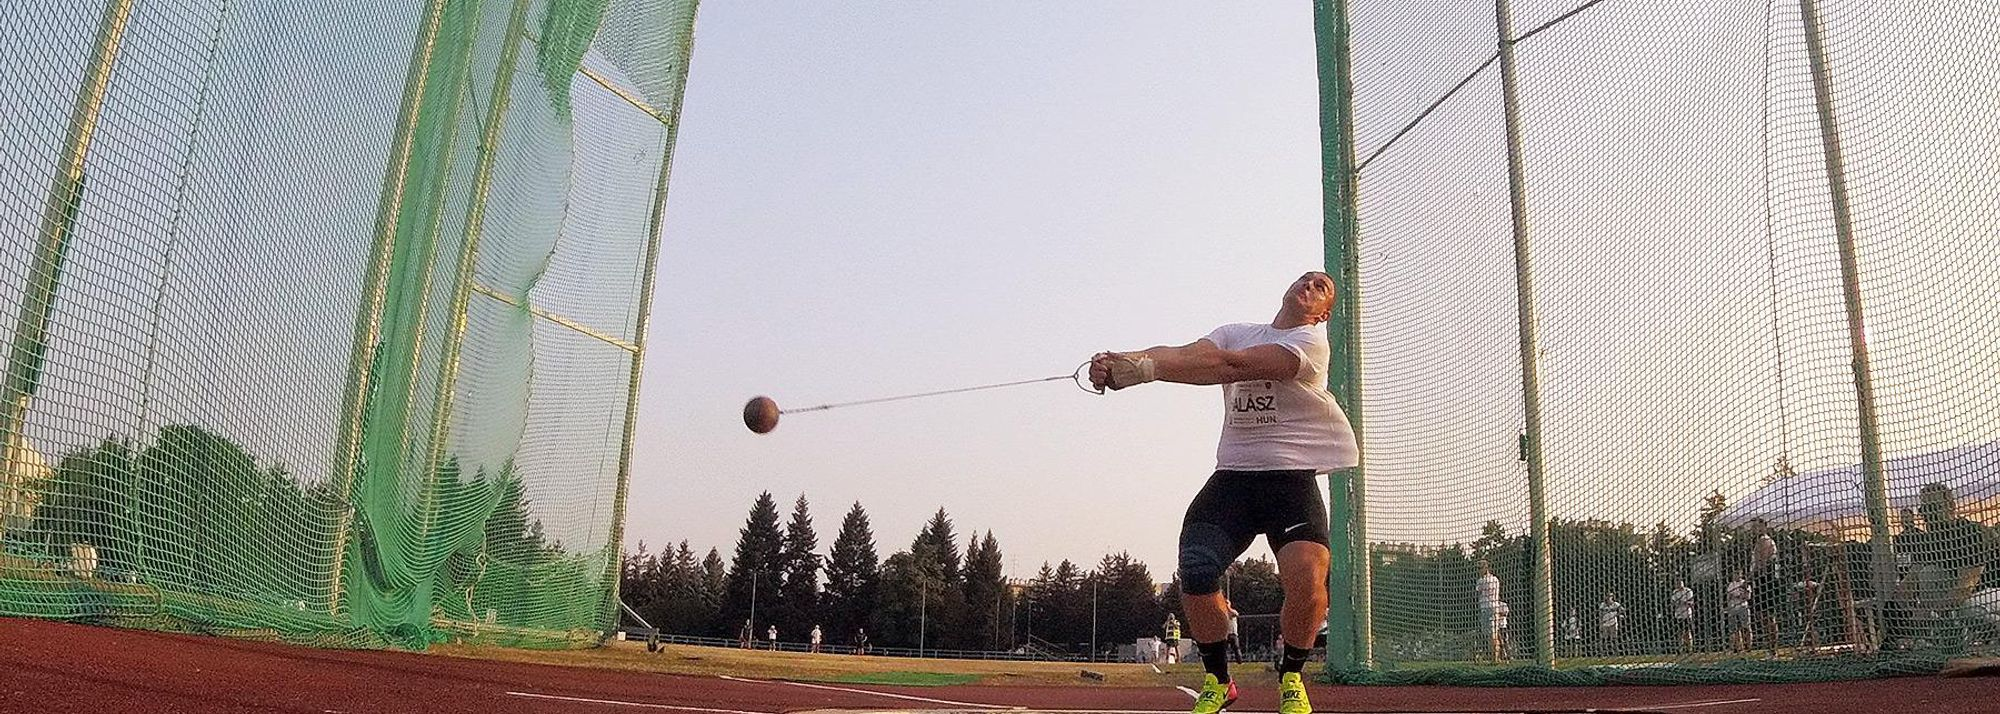 European bronze medallist Bence Halasz delighted the home crowd at the Pal Nemeth Memorial by winning the men's hammer, while North American record-holder DeAnna Price won the women's contest at the IAAF Hammer Throw Challenge meeting in Szombathely on Tuesday (27).